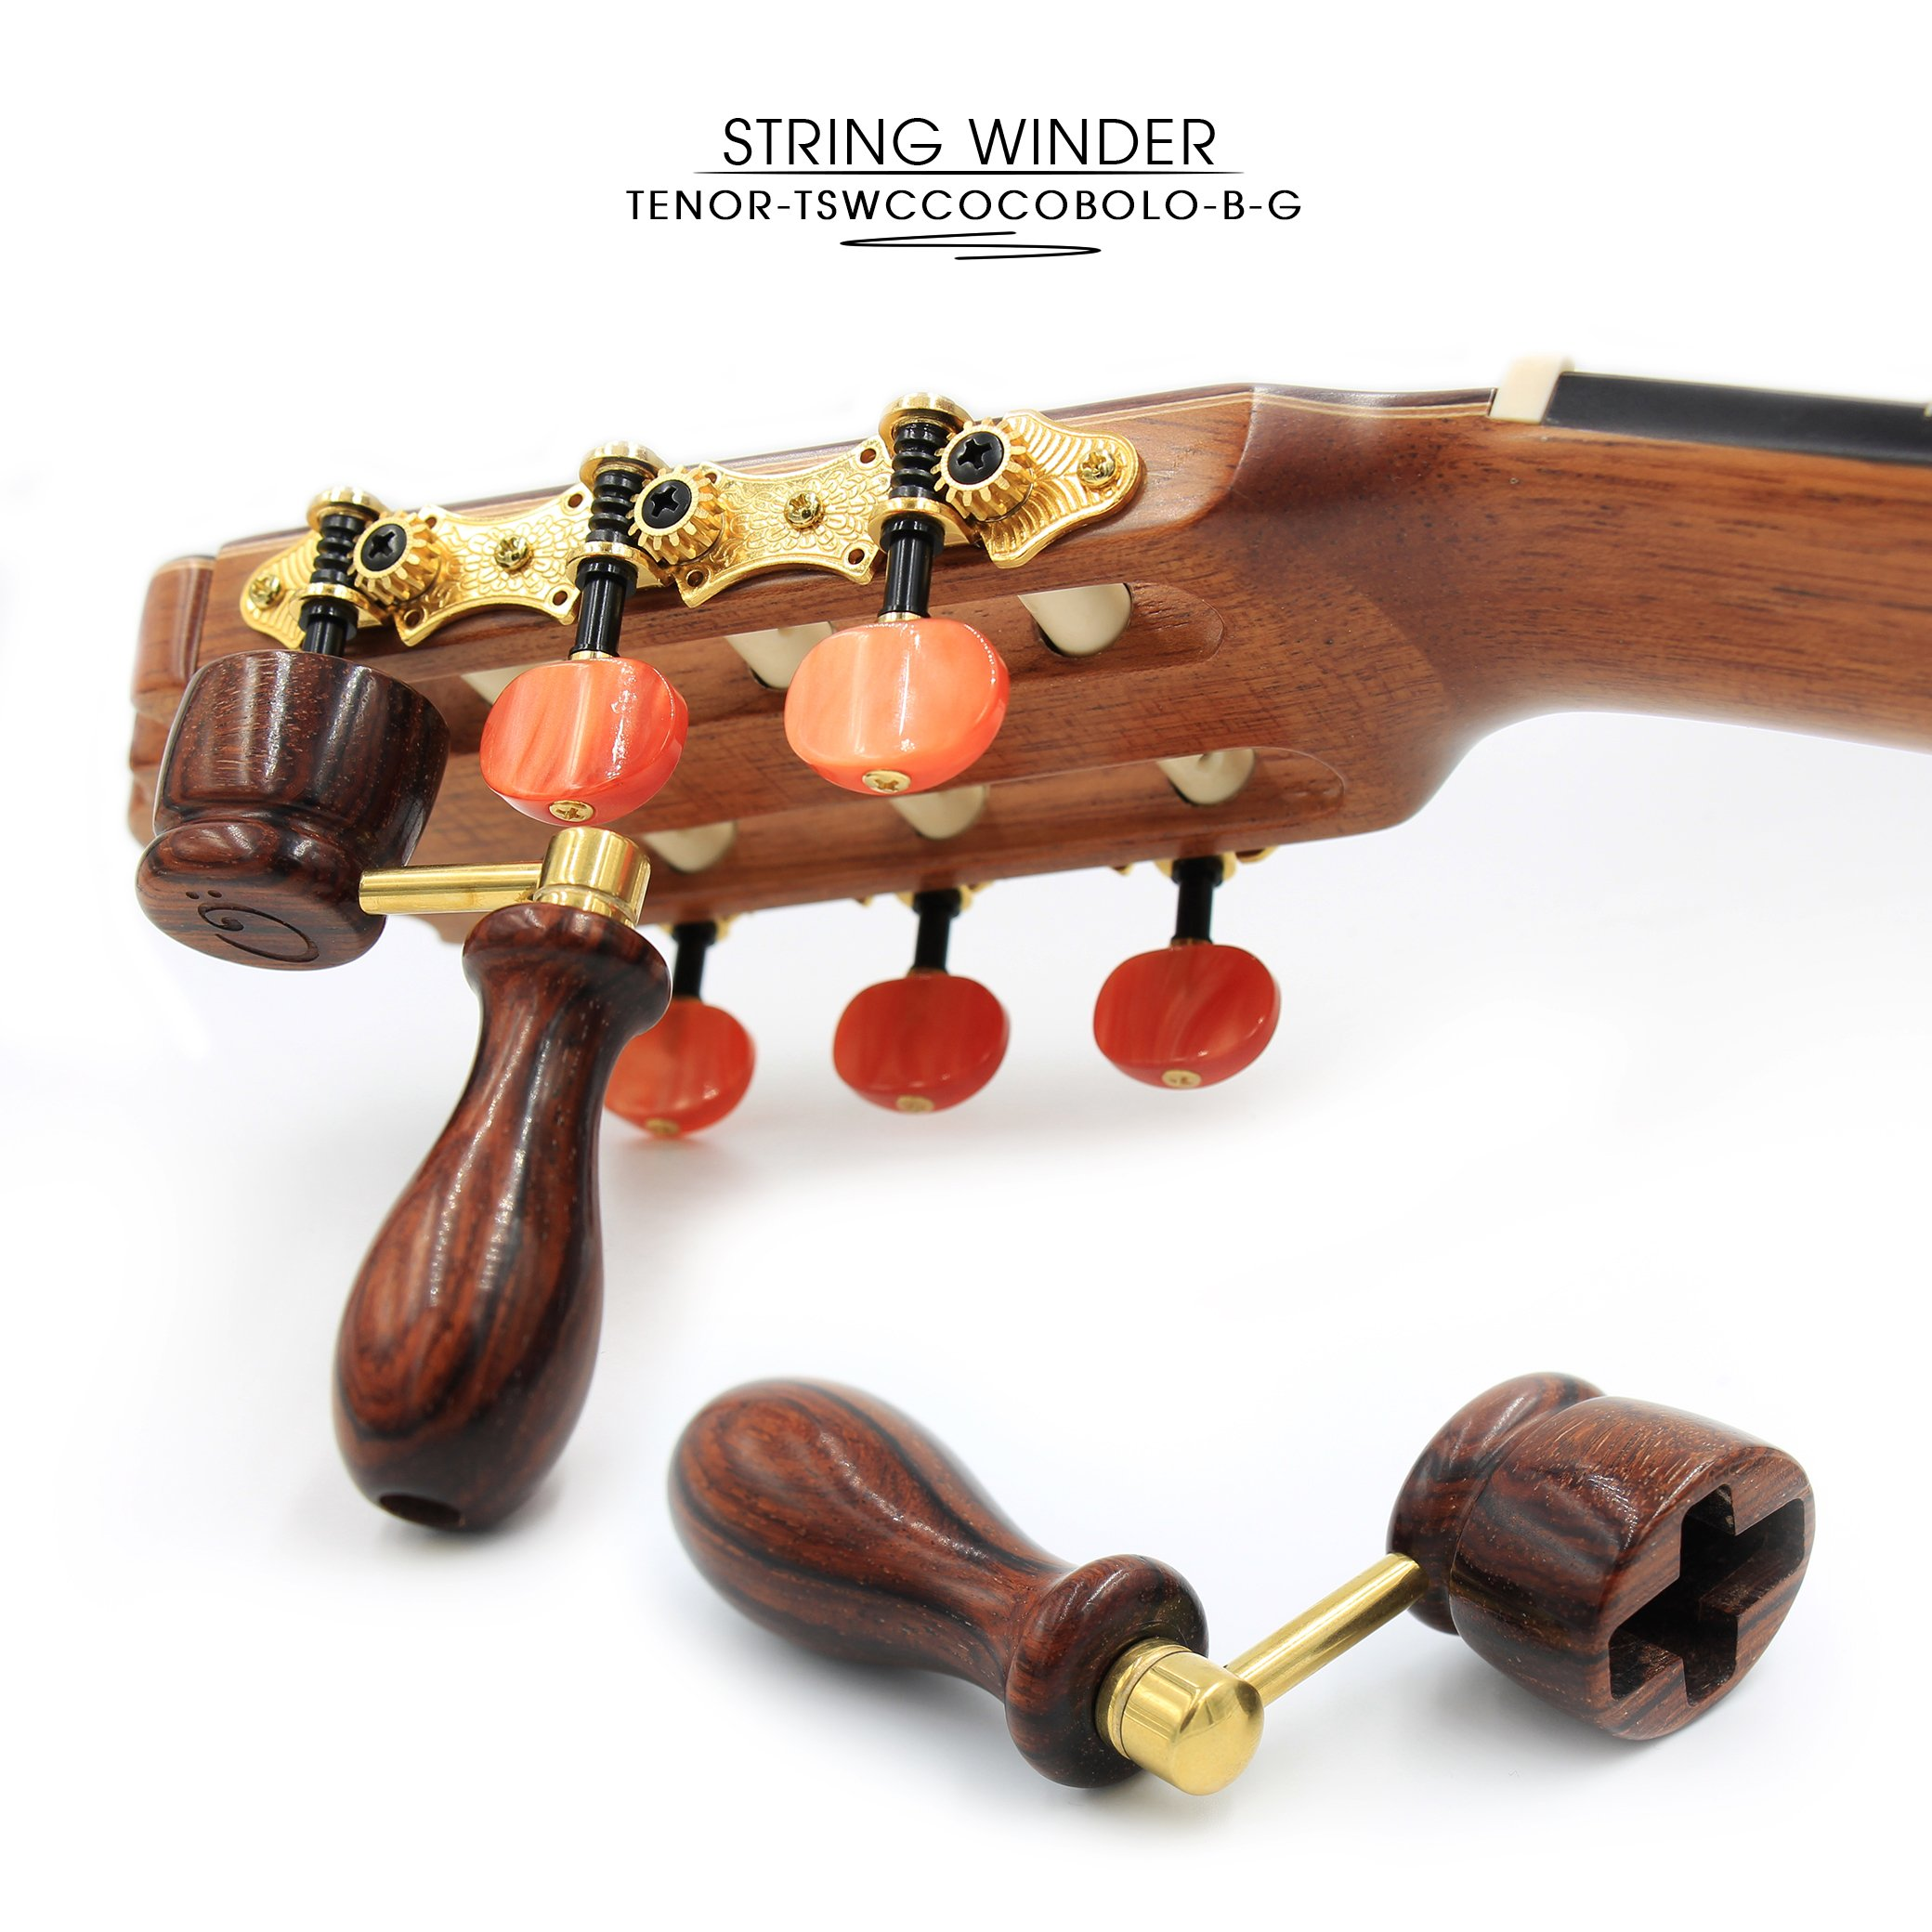 ''COCOBOLO'' Handcrafted Wooden Guitar String Winder by Tenor. Designed For Classical, Flamenco, Acoustic, Electric Guitars and Ukuleles. Made Of Solid Handpicked COCOBOLO Wood. Beautiful Vintage Look.